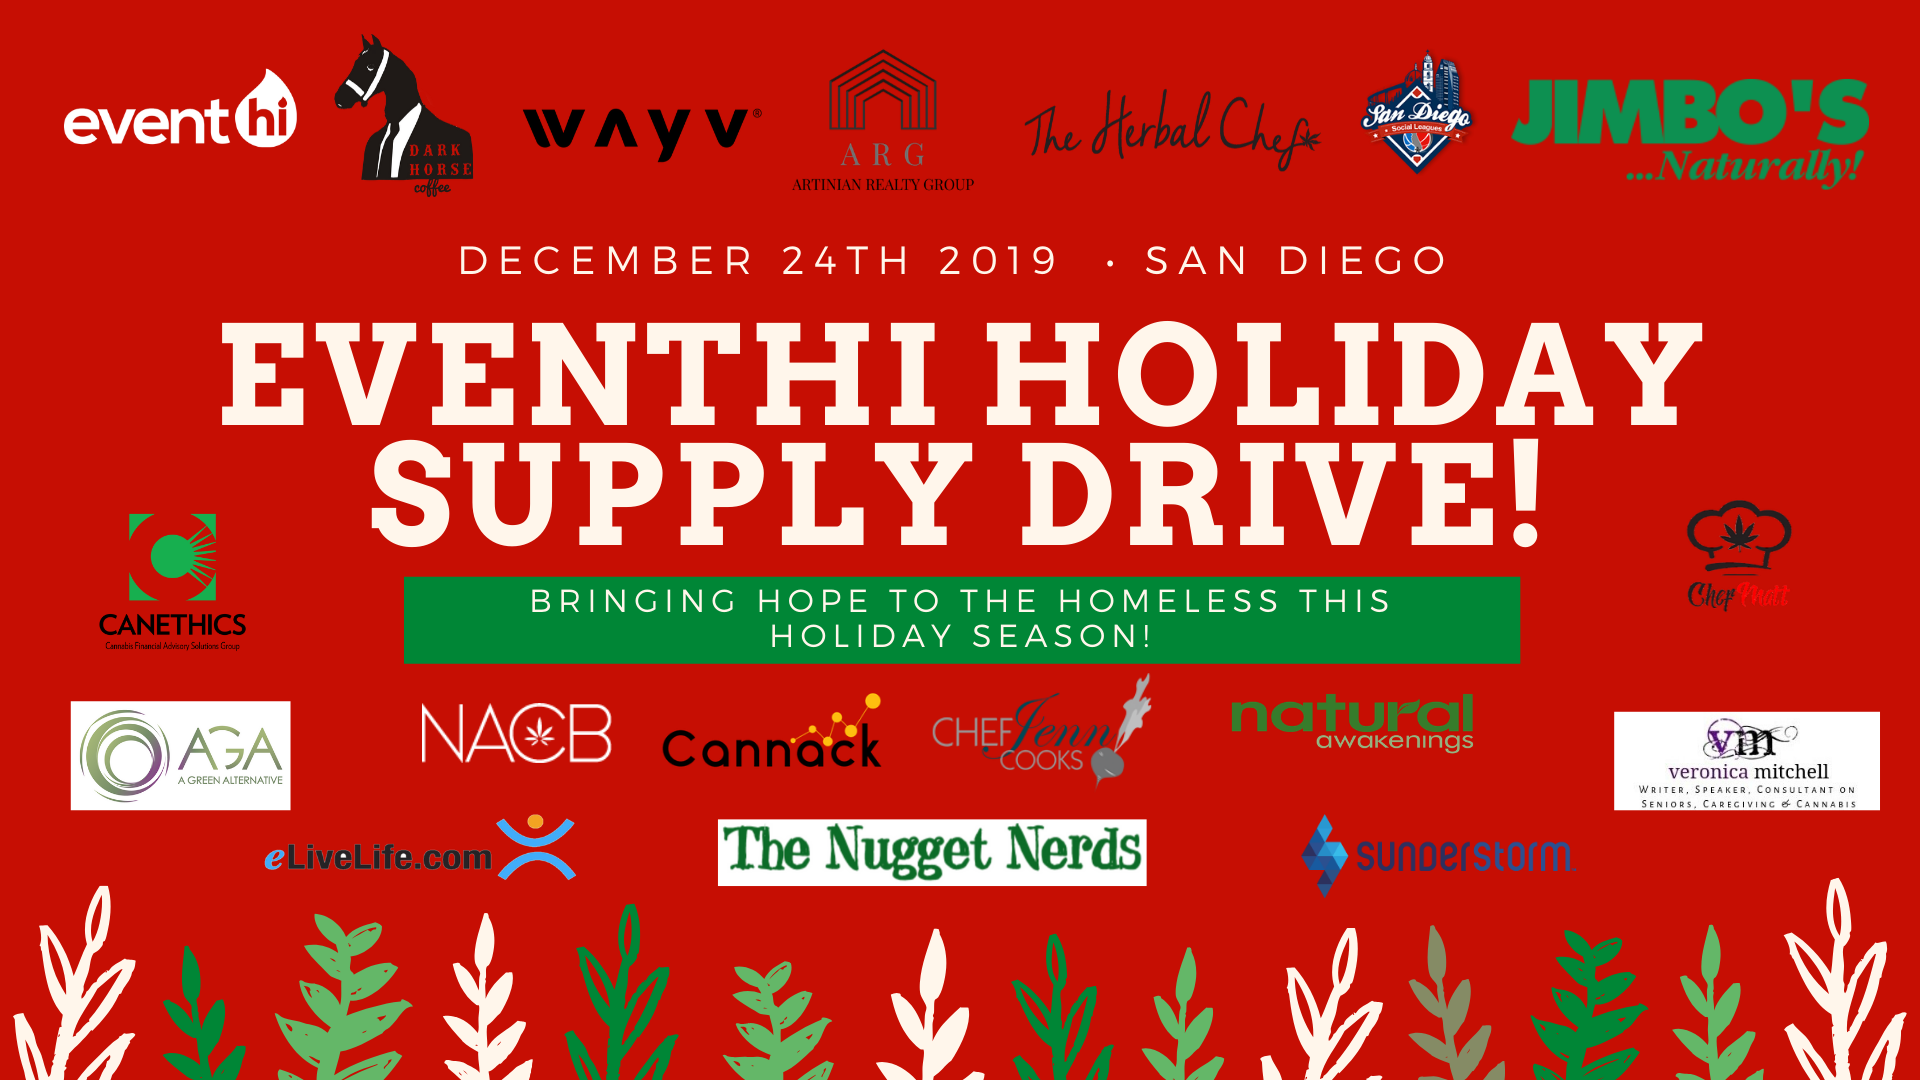 EventHi Holiday Supply Drive (Sponsorships)